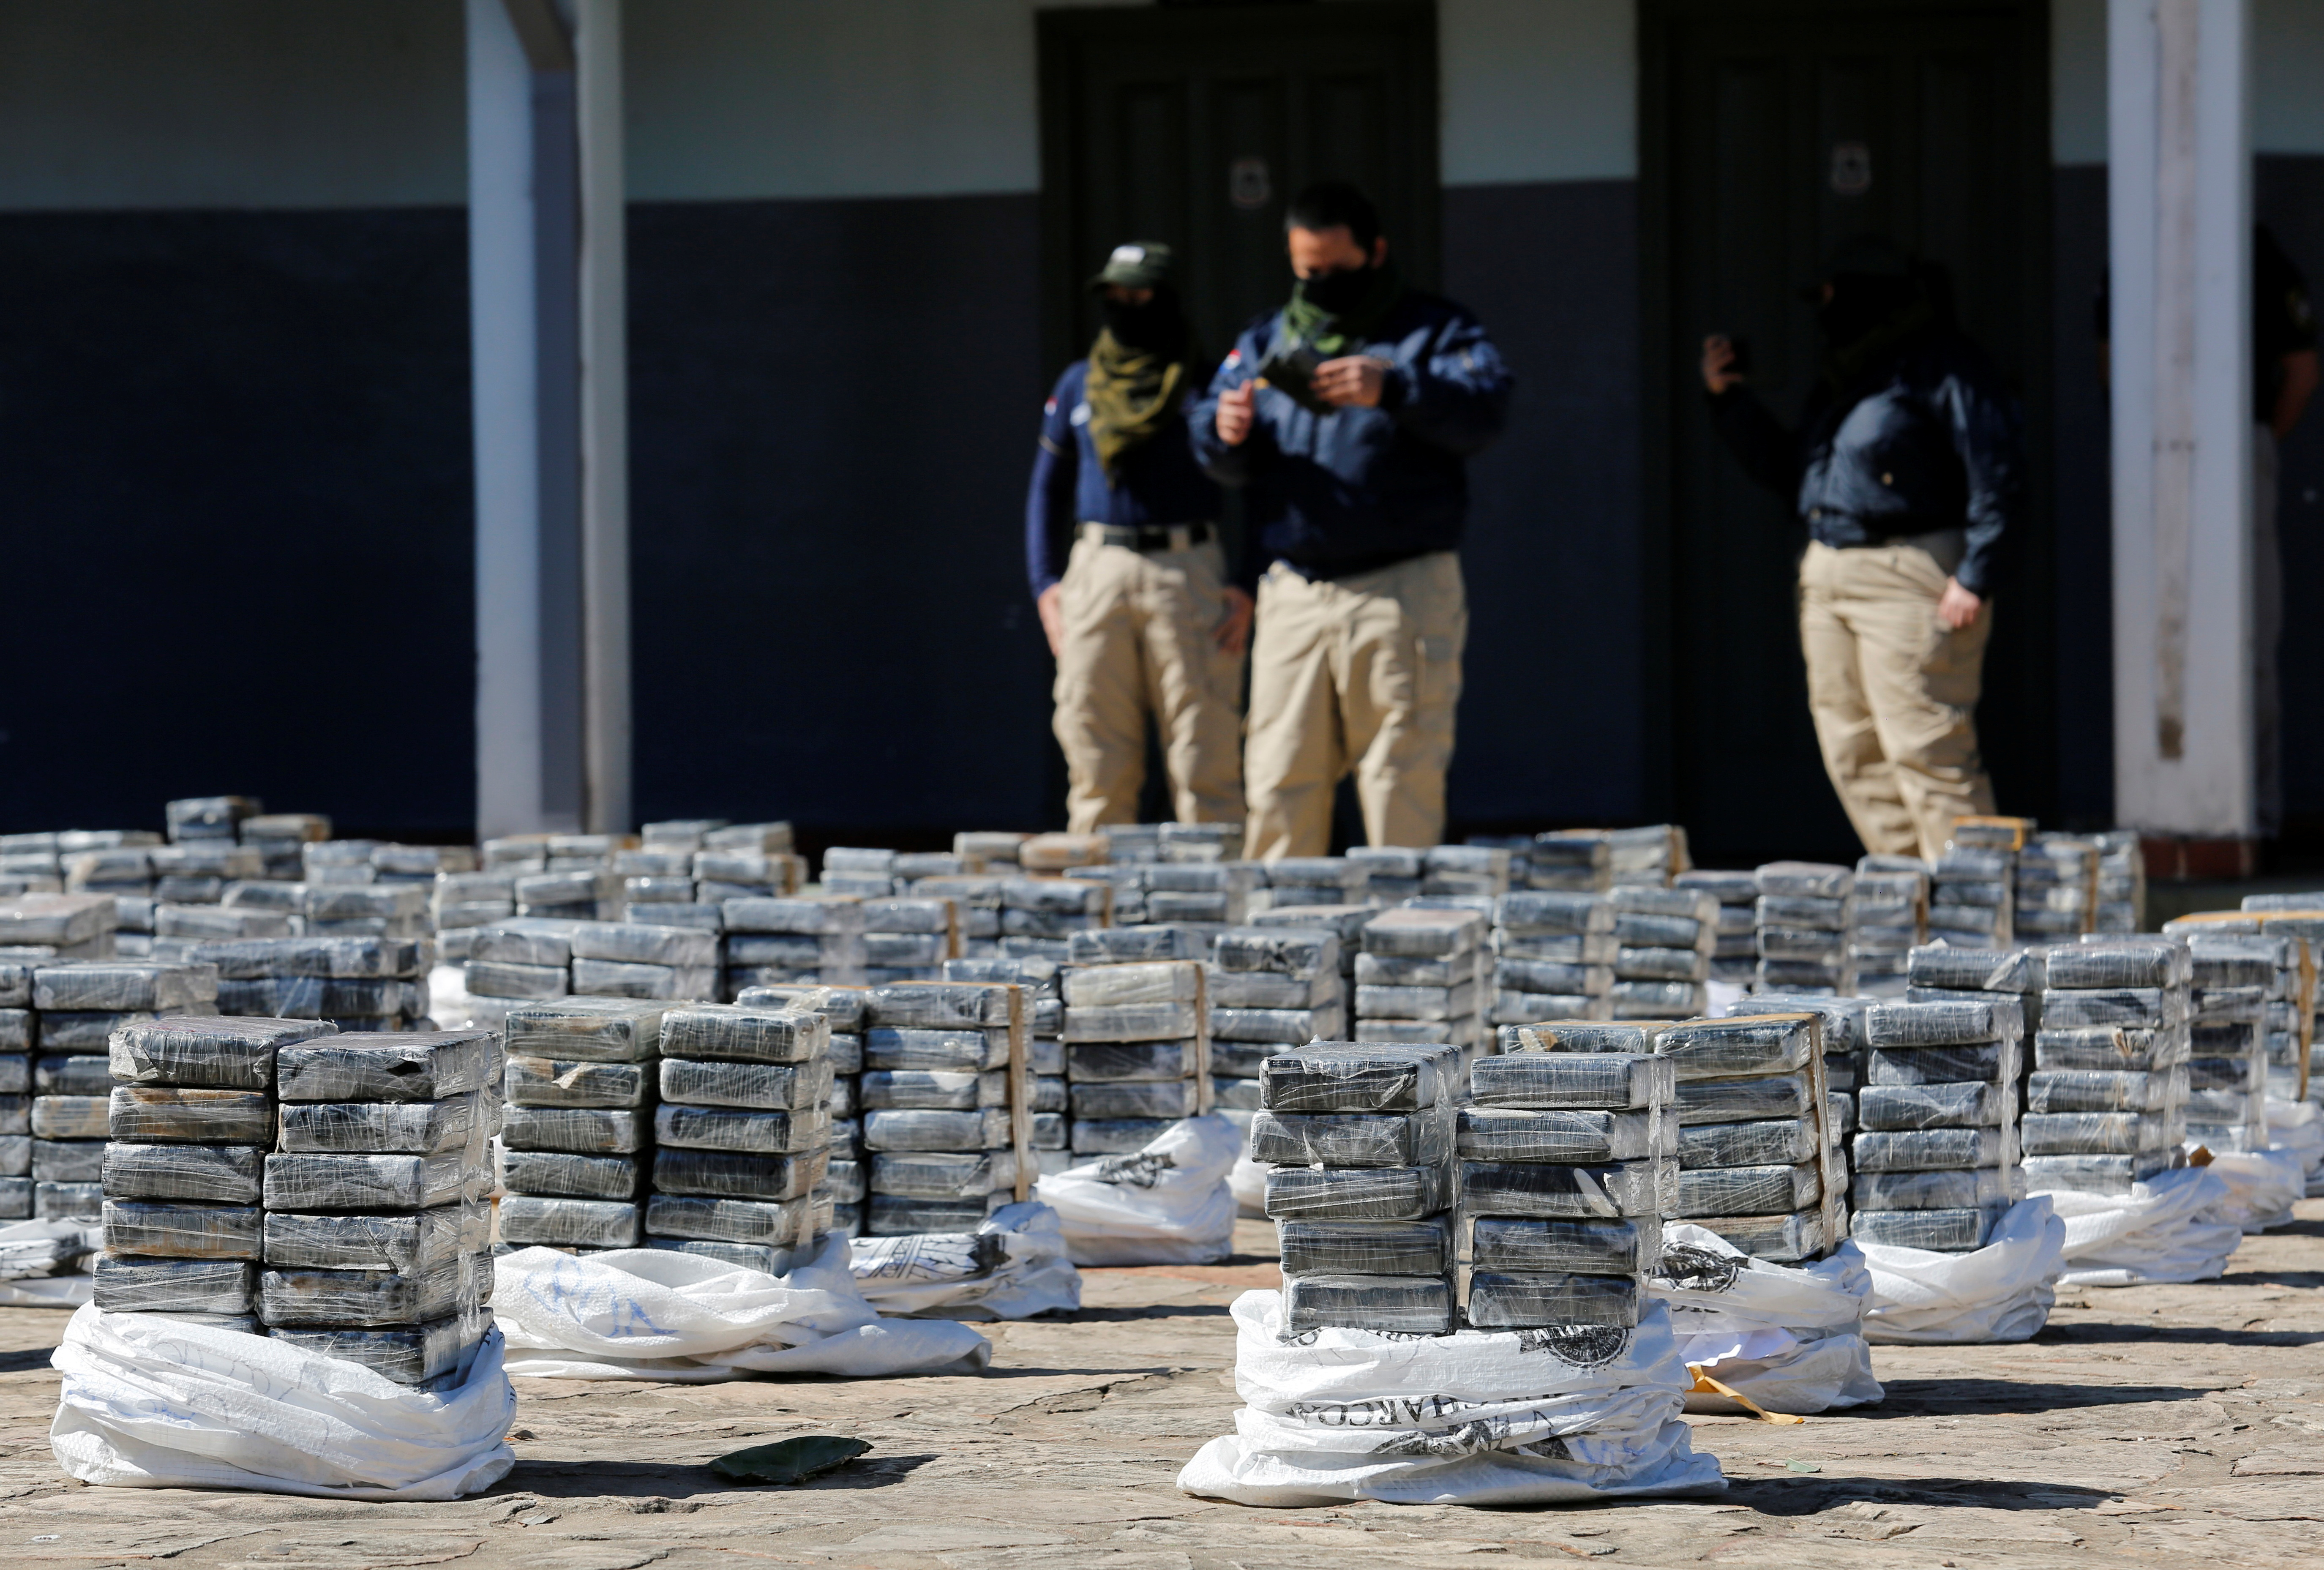 Paraguayan police put on display packages containing cocaine, which were found in a warehouse ready to be shipped abroad along with a load of organic sugar, according to authorities, in Asuncion, Paraguay July 28, 2021. REUTERS/Cesar Olmedo